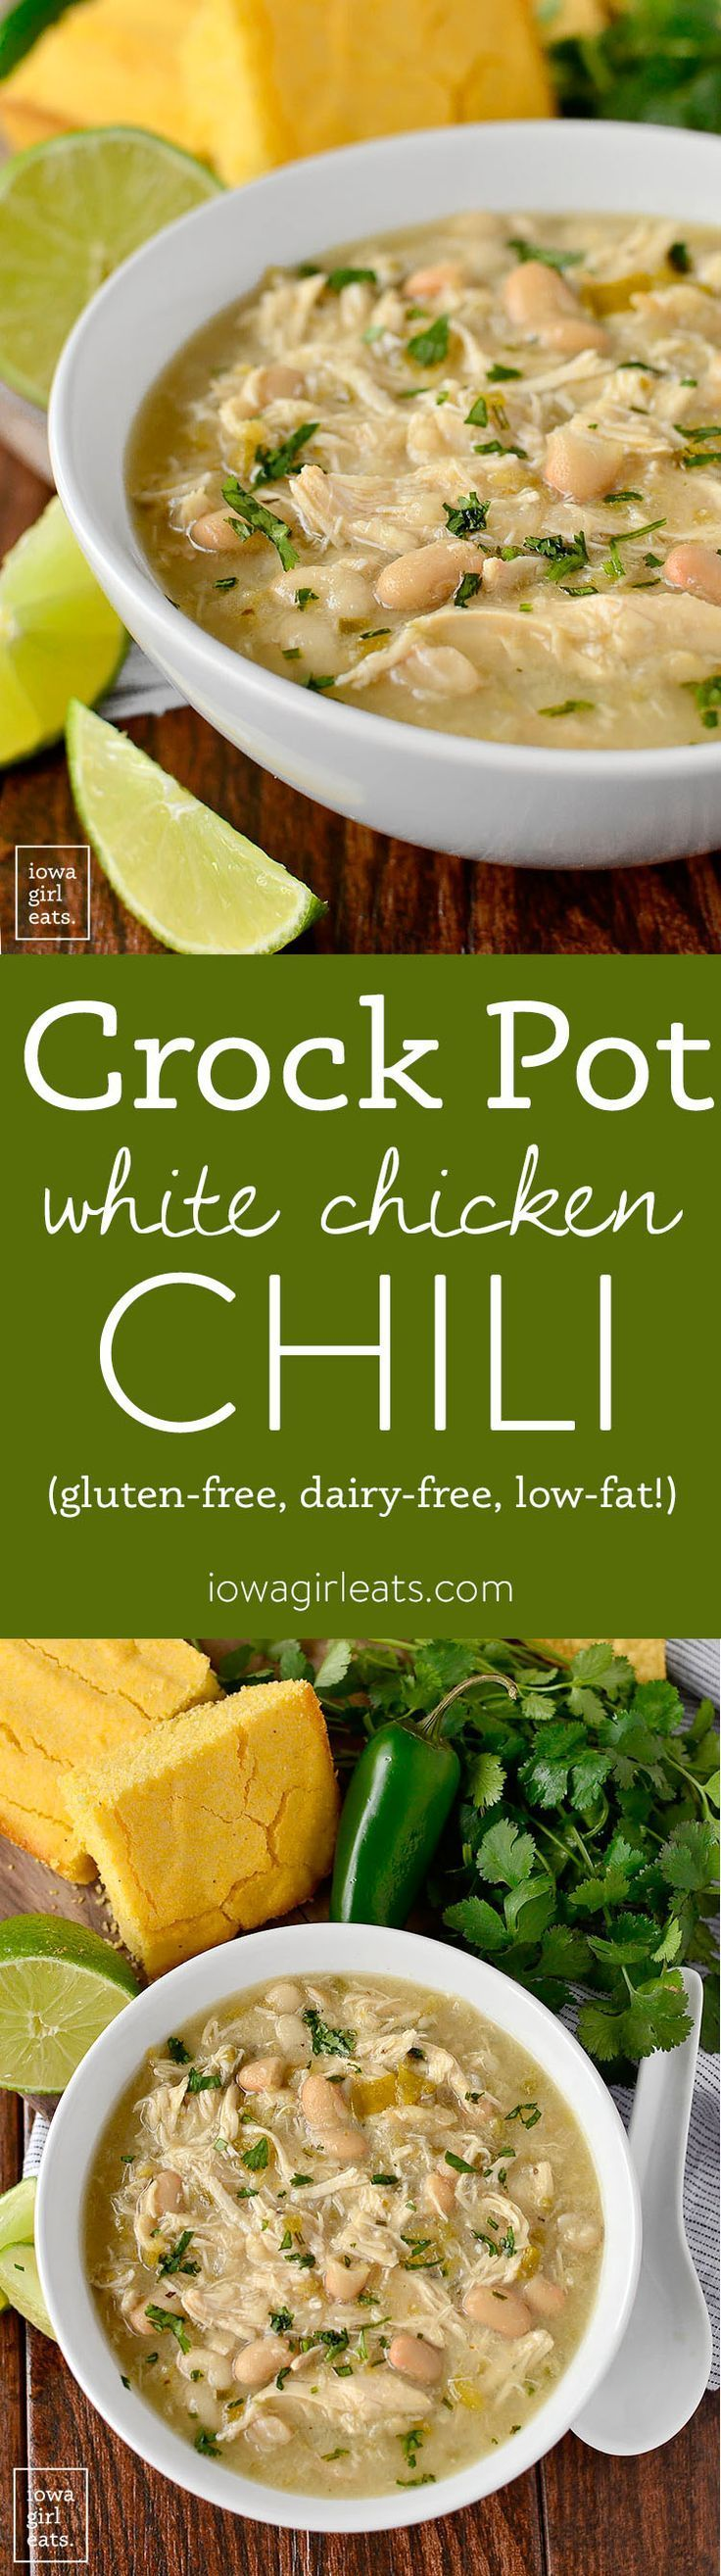 Crock Pot White Chicken Chili is hearty and filling yet low-fat, gluten and dairy-free! | http://iowagirleats.com